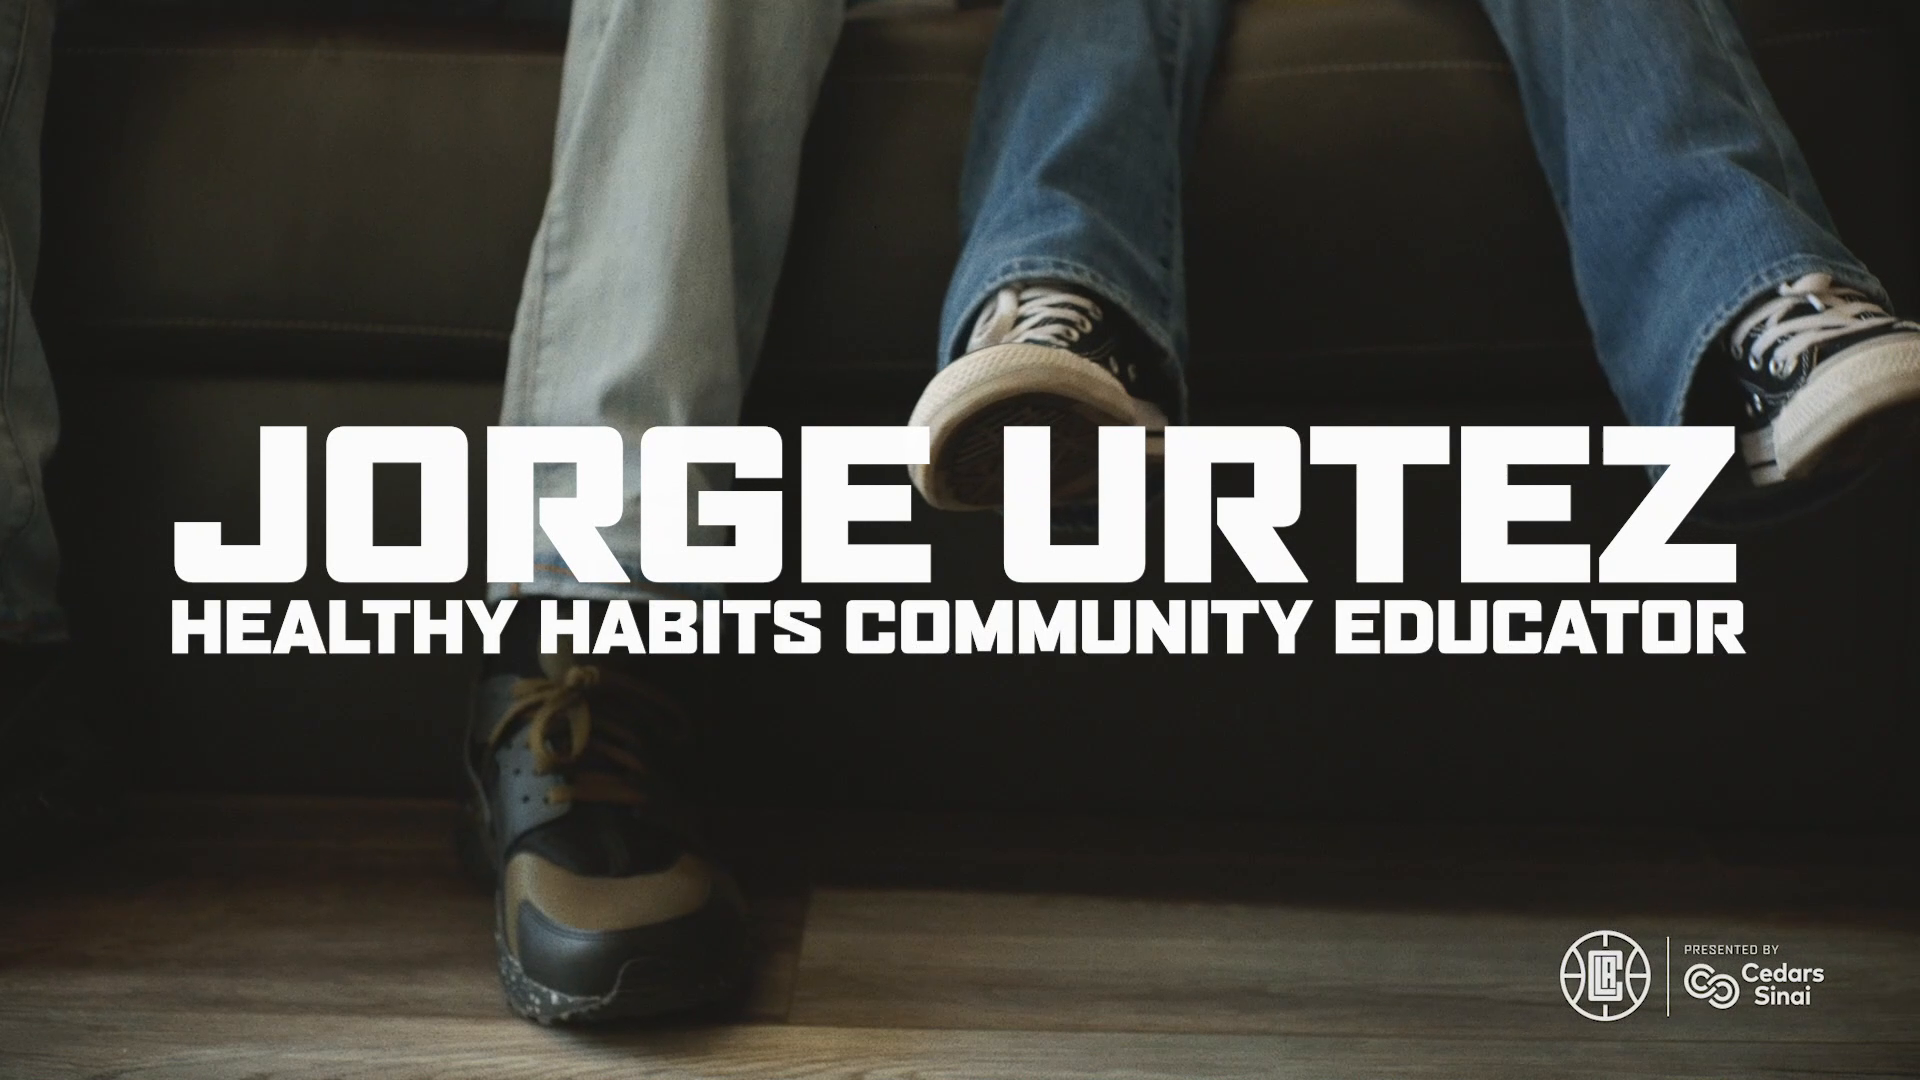 Jorge Urtez, Healthy Habits Community Educator